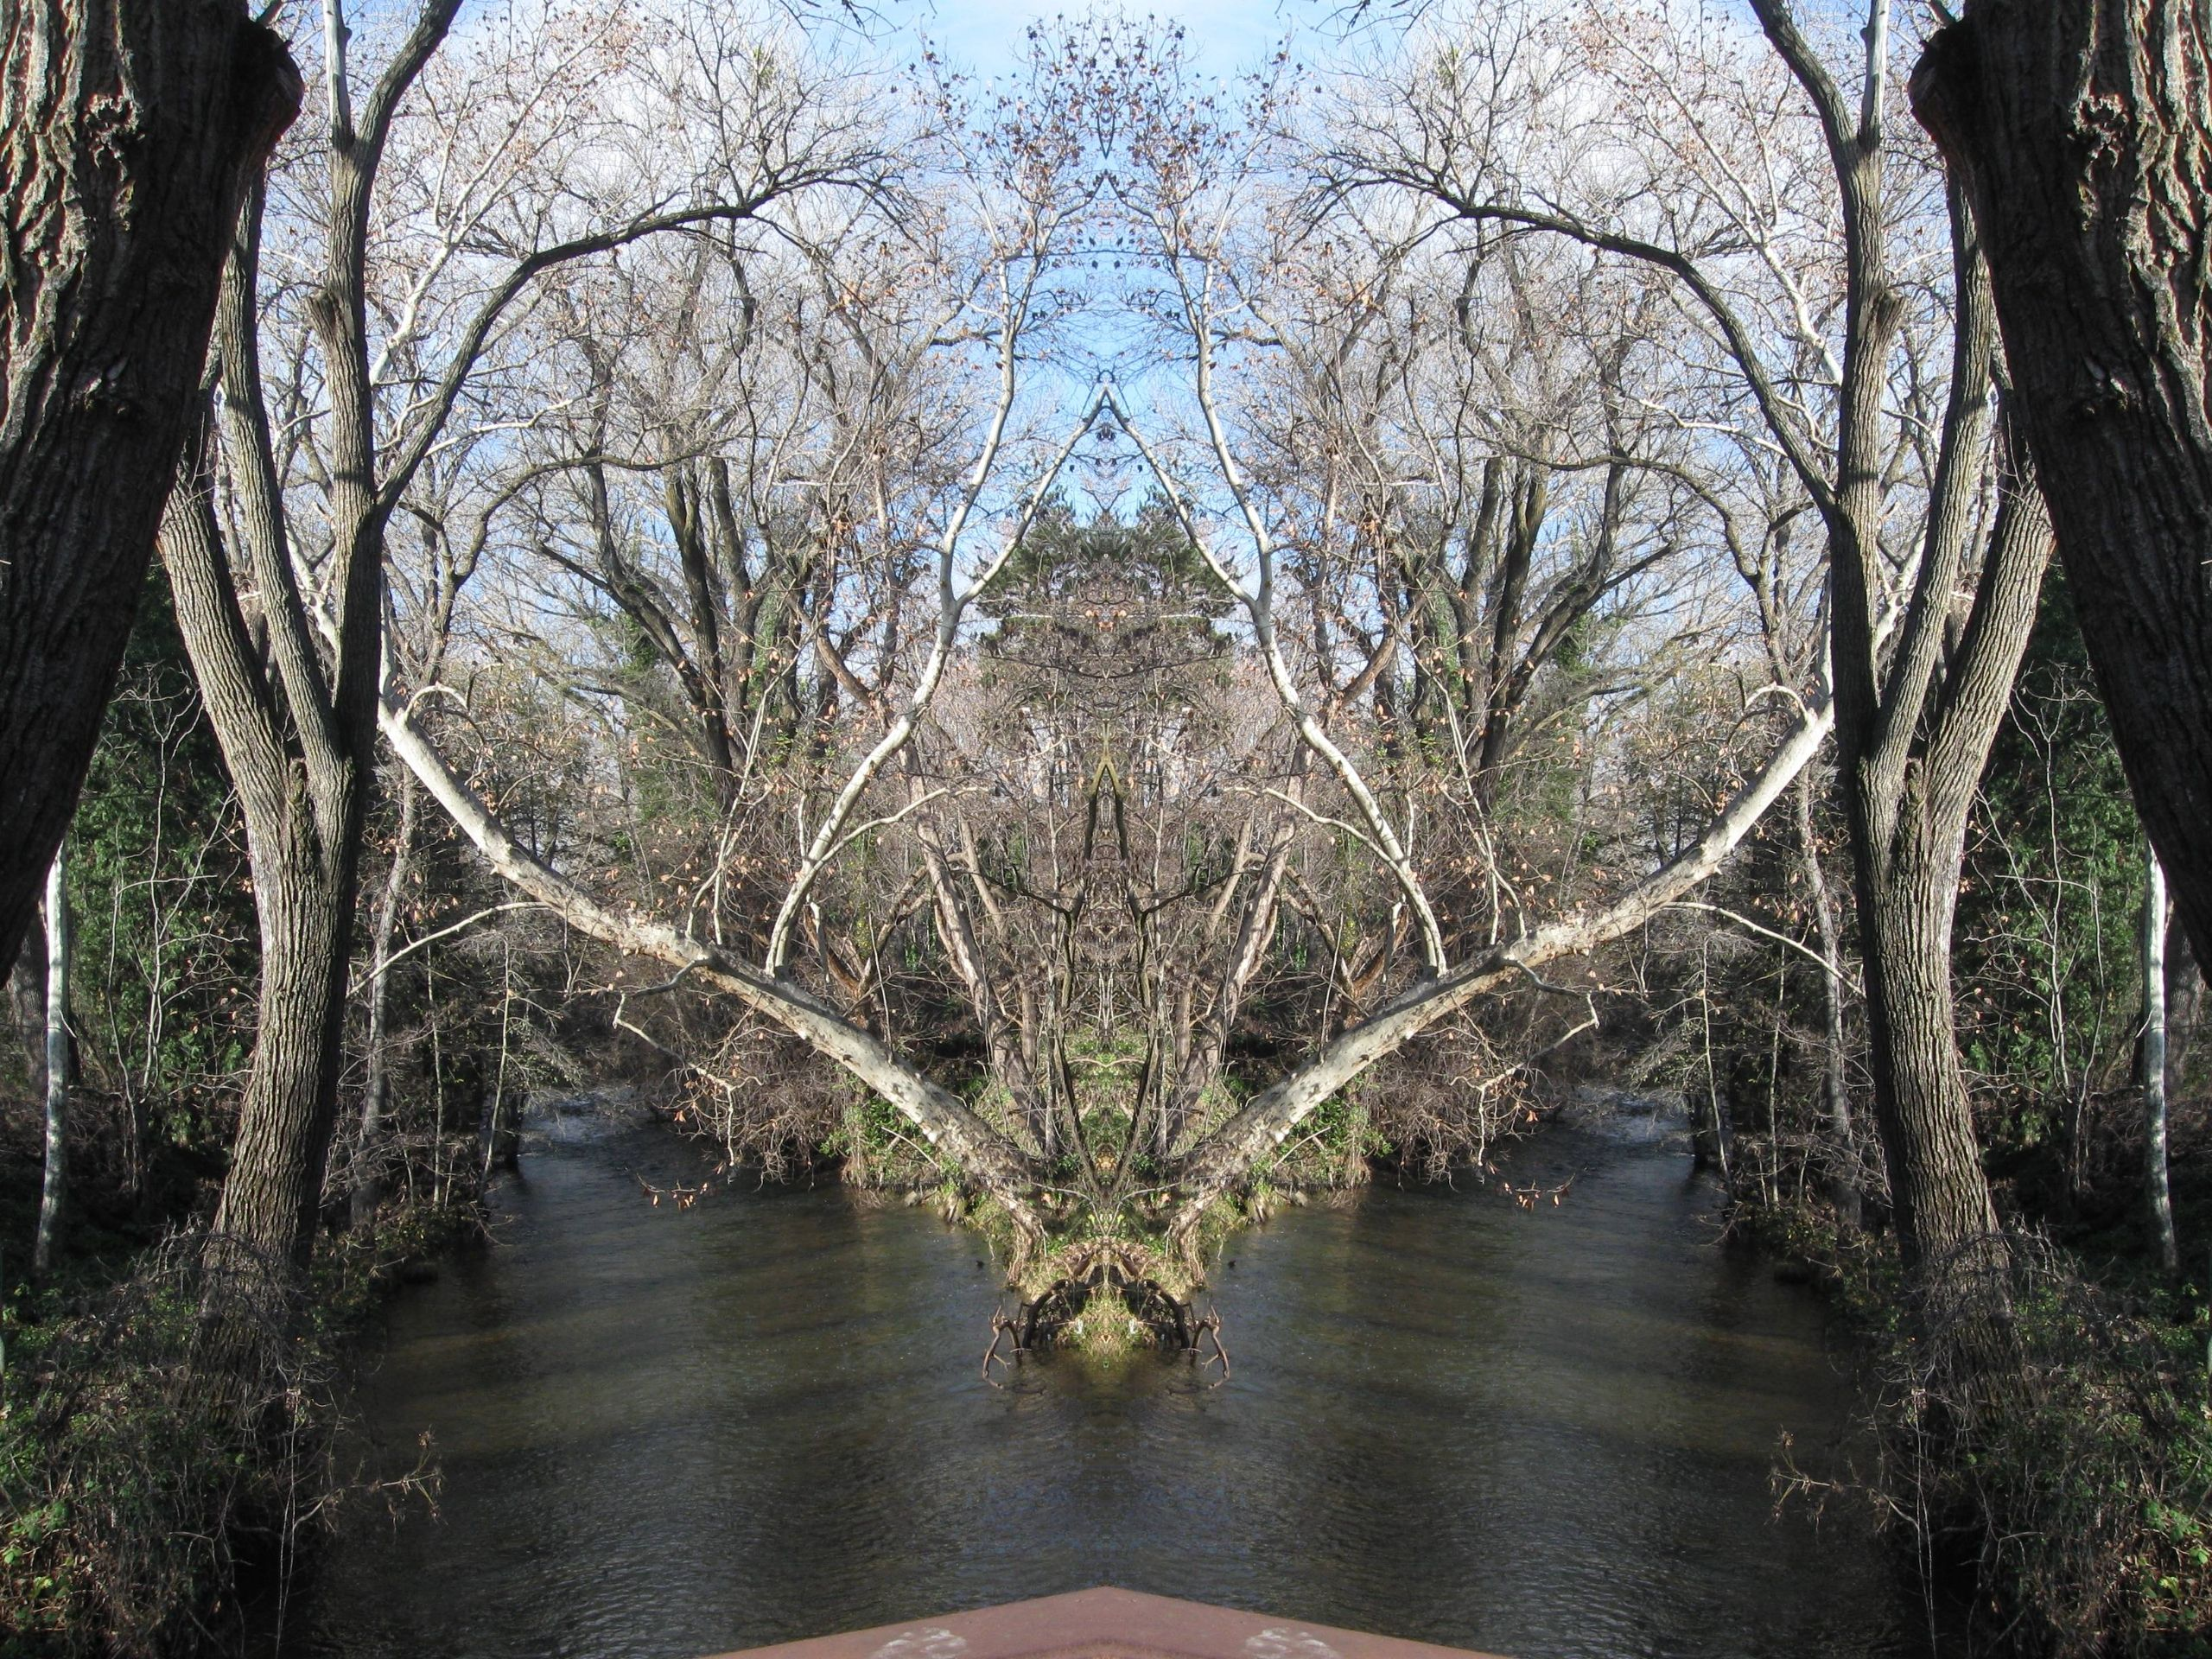 The Sagging Sycamore Dragon of Little Chico Creek in full Pareidolia mode with eyes a great illusion of (super)Natural f...